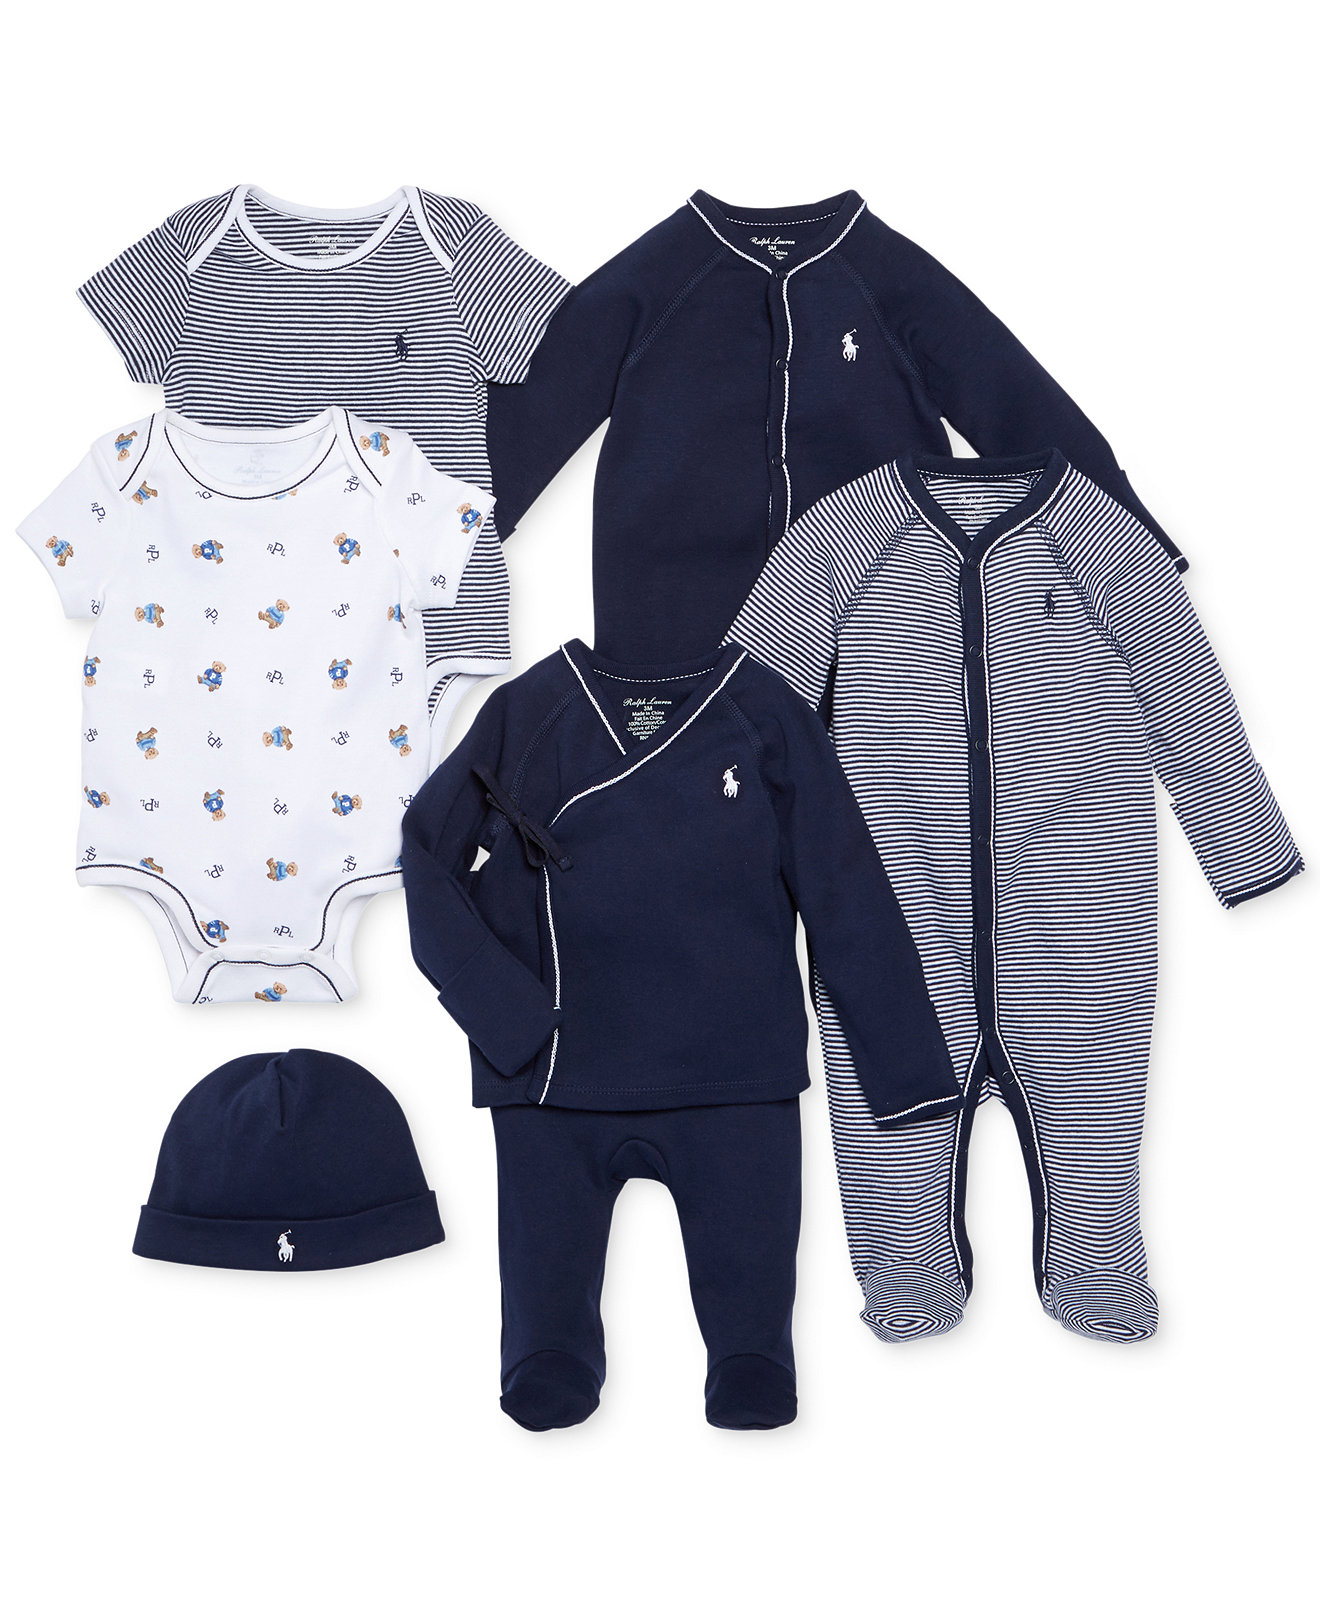 a1d0e402 Polo Clothes For Baby Girl